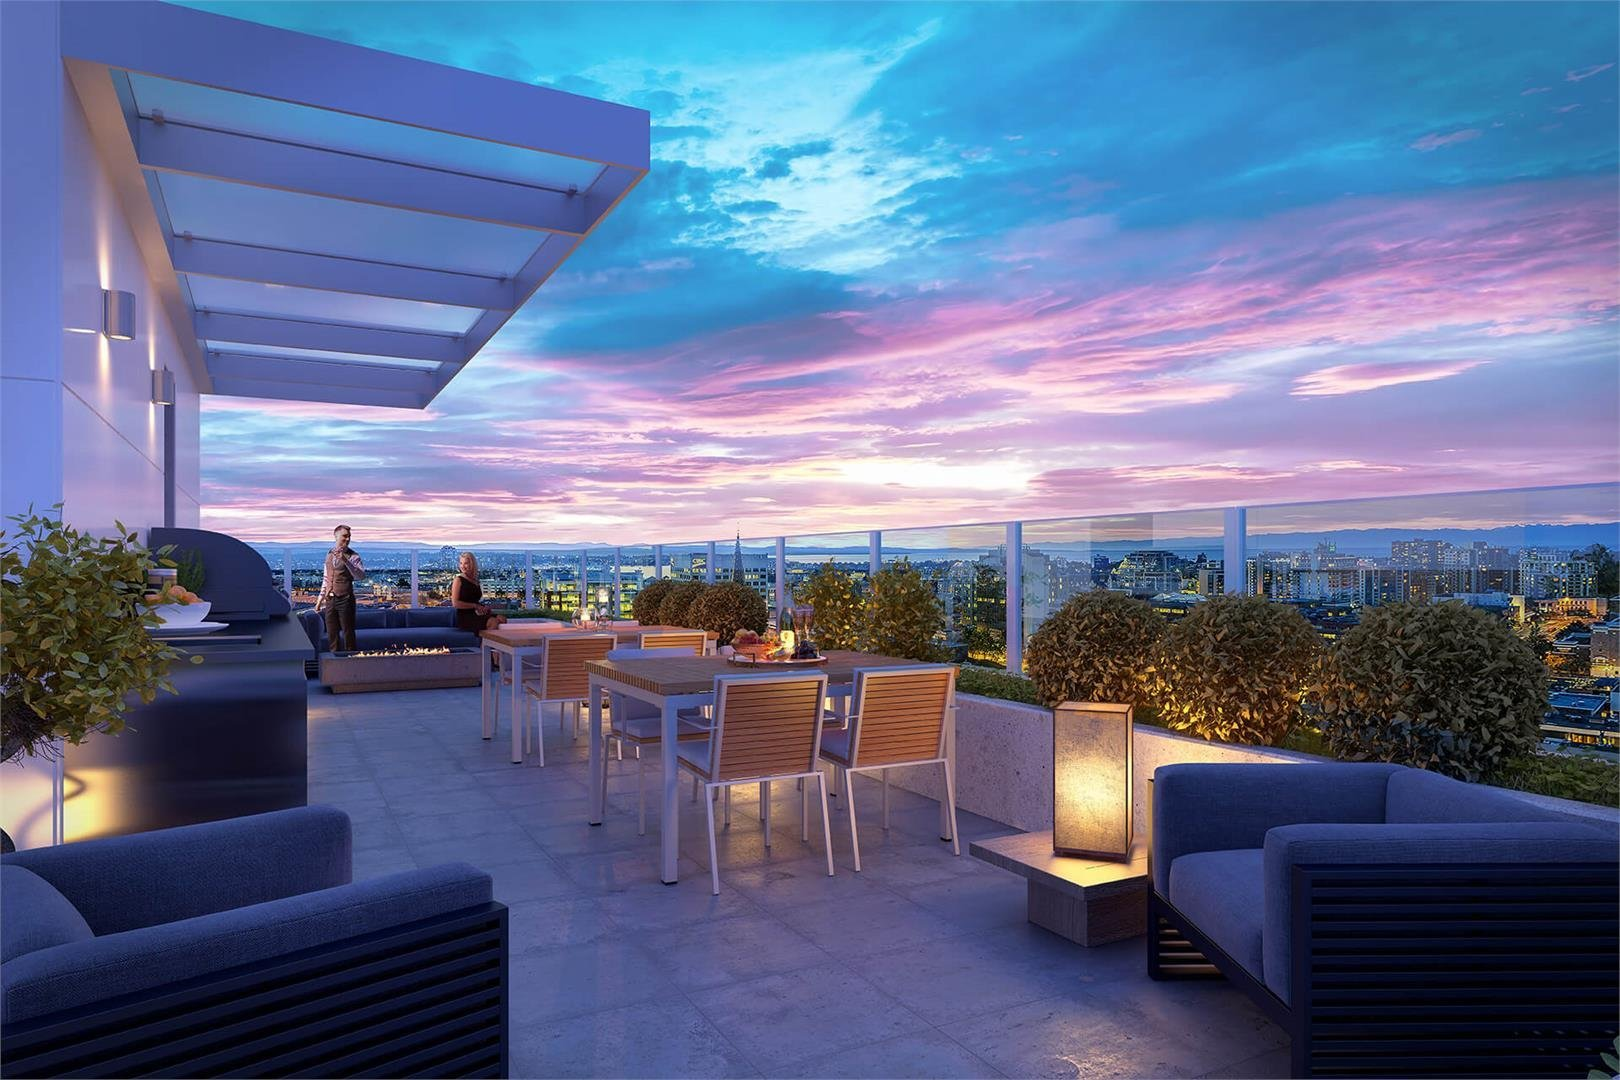 The Yates on Yates Display Rooftop Terrace!